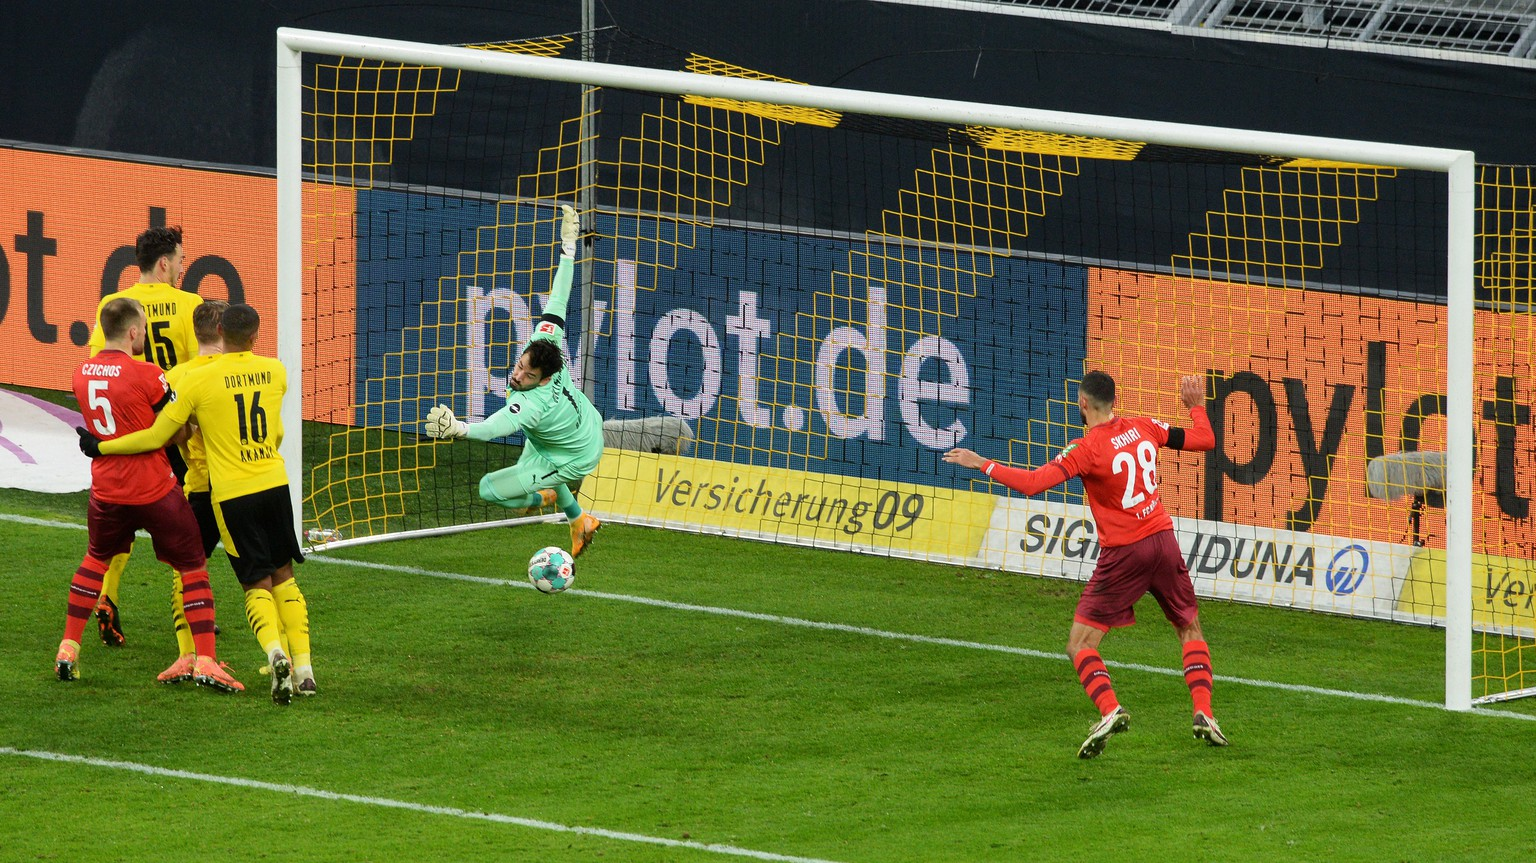 epa08849122 Cologne's Tunisian midfielder Ellyes Skhiri scores goal to 0:2 during the German first division Bundesliga football match Borussia Dortmund v 1.FC Cologne at the Signal Iduna Park Stadium in Dortmund, Germany, 28 November 2020..  EPA/UWE KRAFT / POOL DFL REGULATIONS PROHIBIT ANY USE OF PHOTOGRAPHS AS IMAGE SEQUENCES AND/OR QUASI-VIDEO